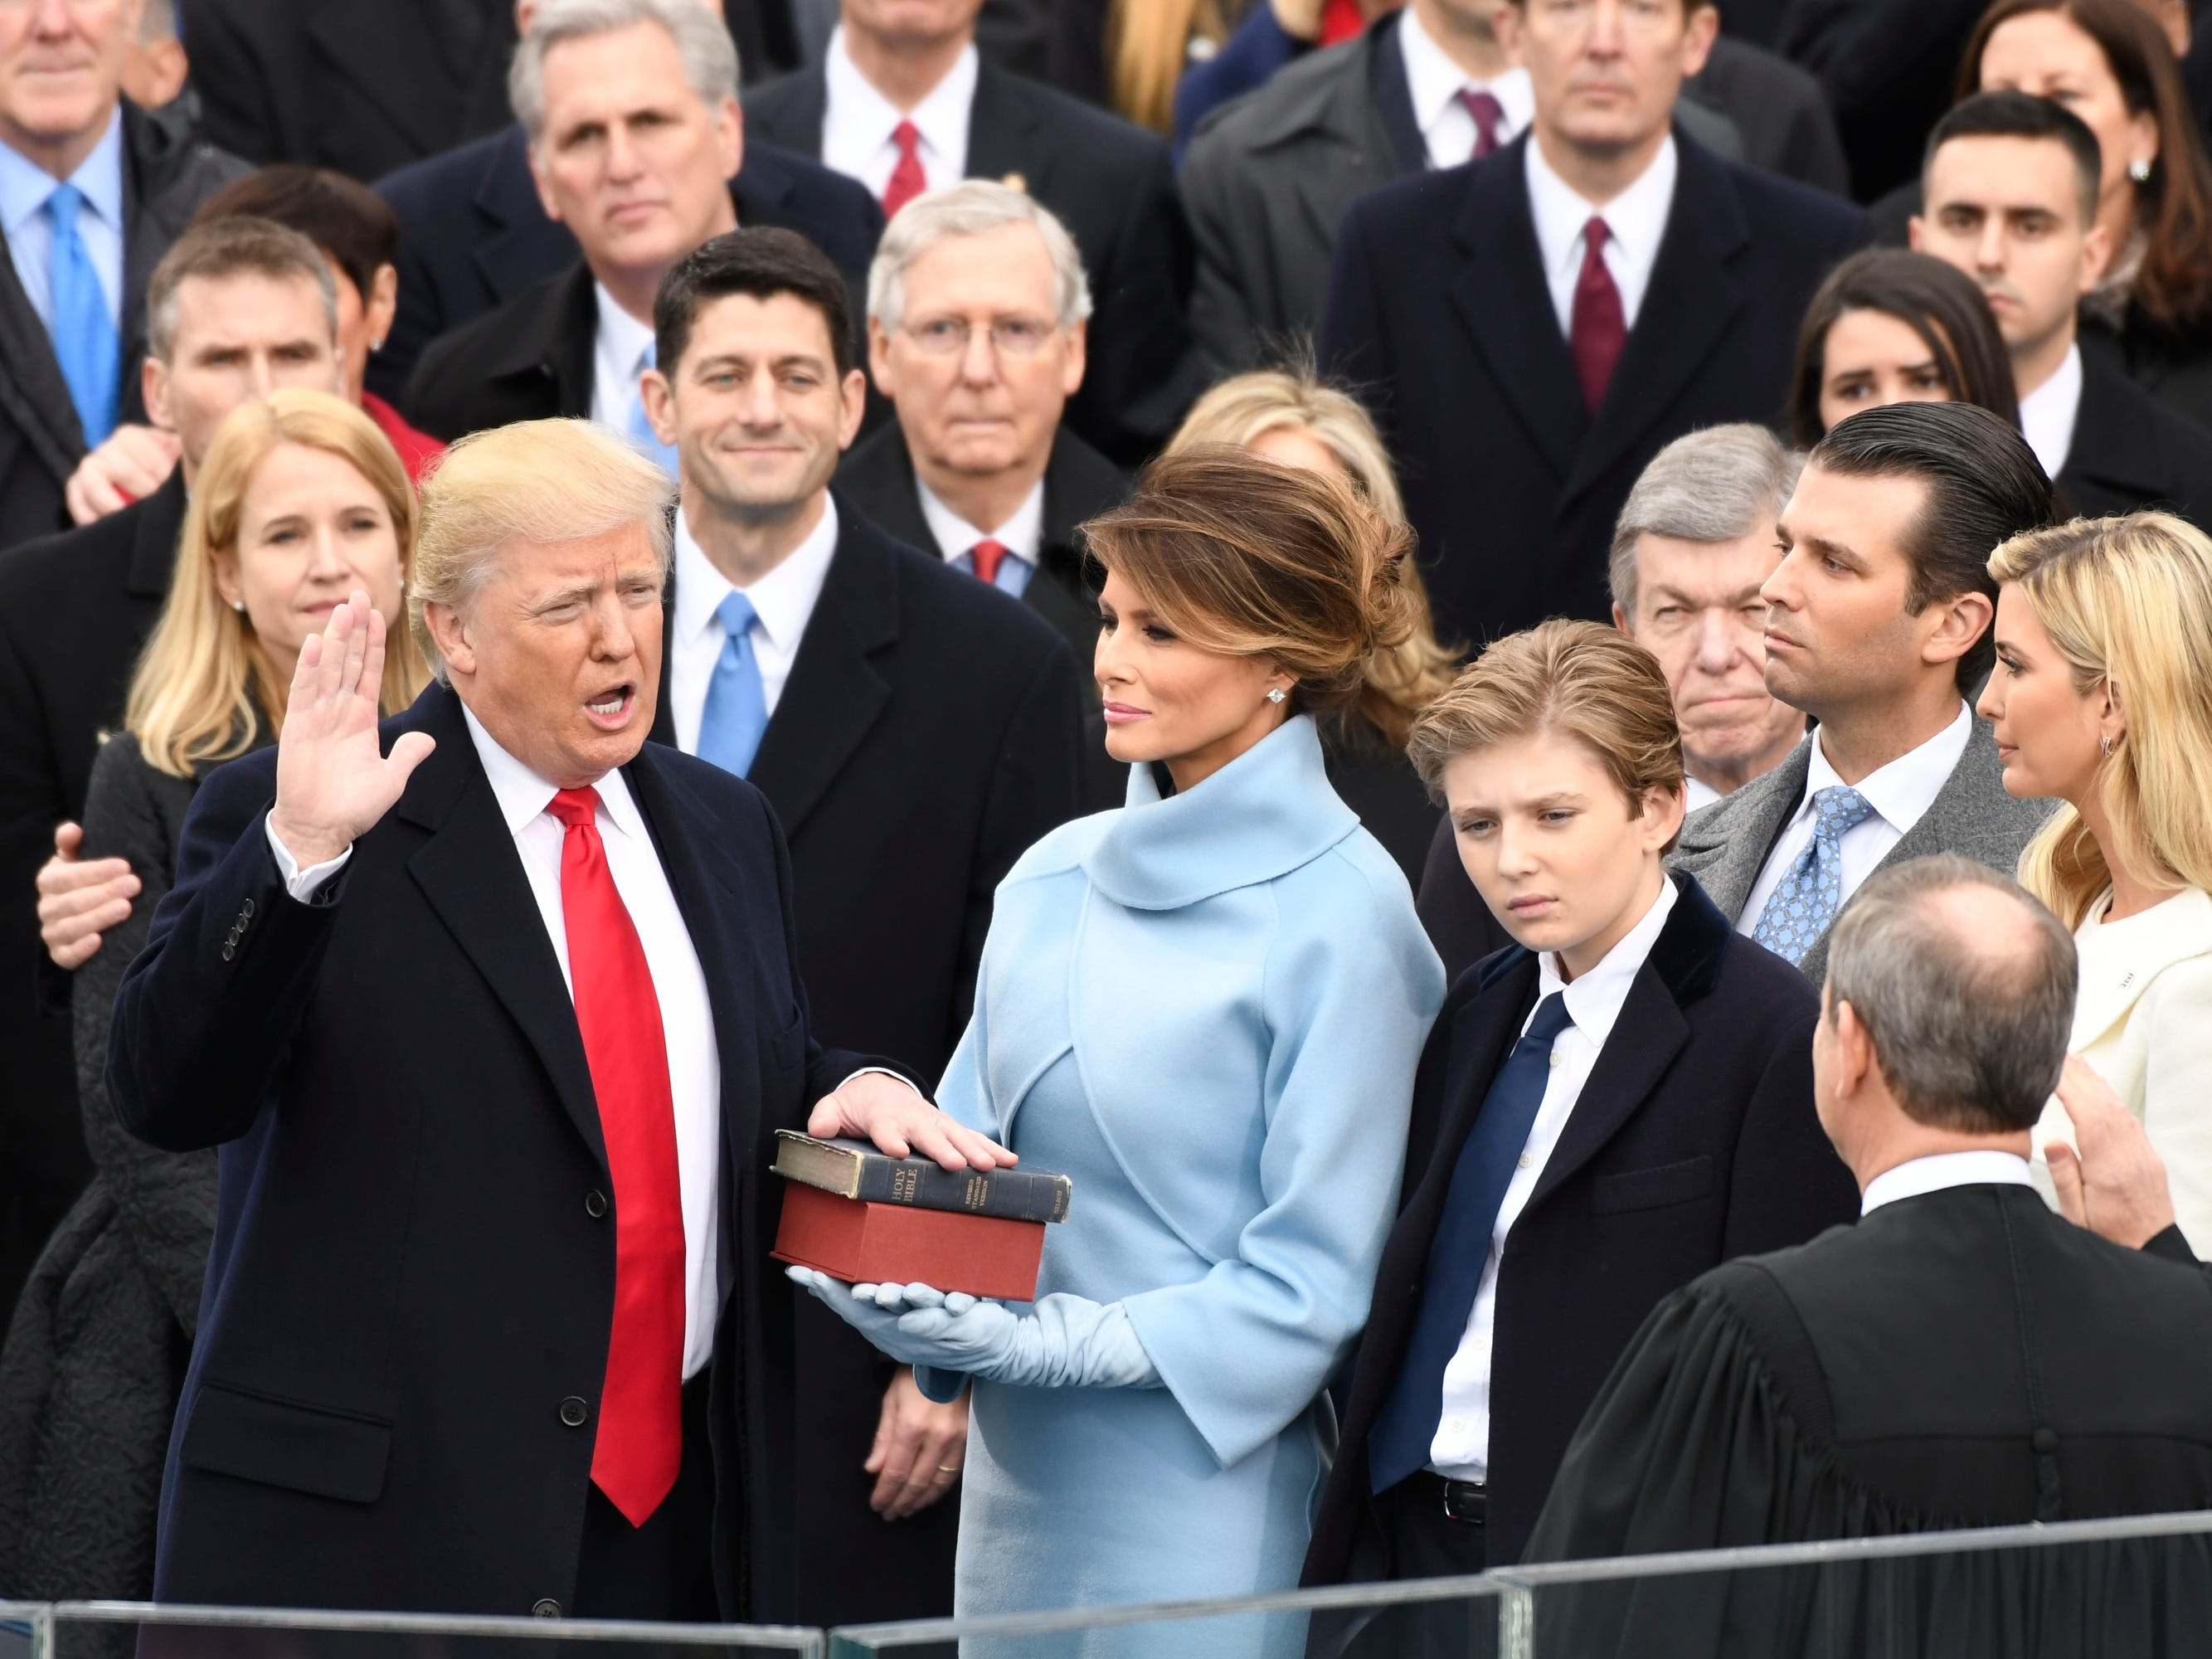 Donald Trump takes the oath of office, while standing with Melania Trump and Barron Trump, during the 2017 Presidential Inauguration at the U.S. Capitol. Chief Justice John Roberts administered the oath of office Jan 20, 2017.